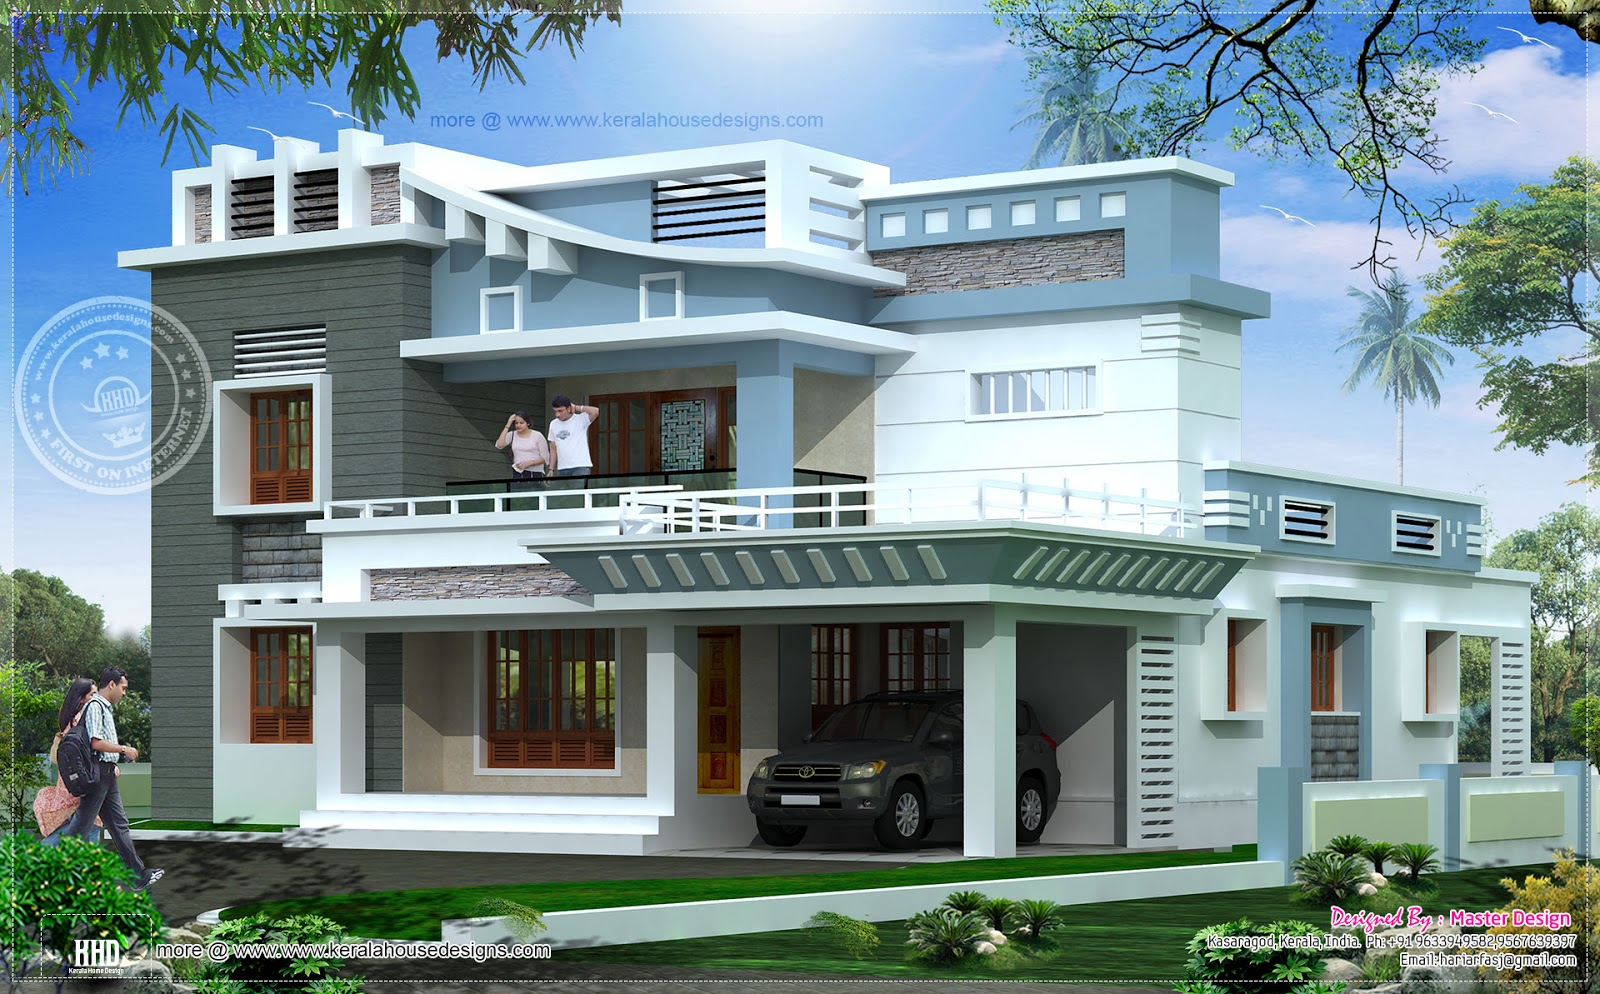 2547 square feet exterior home elevation house design plans for Home outside design